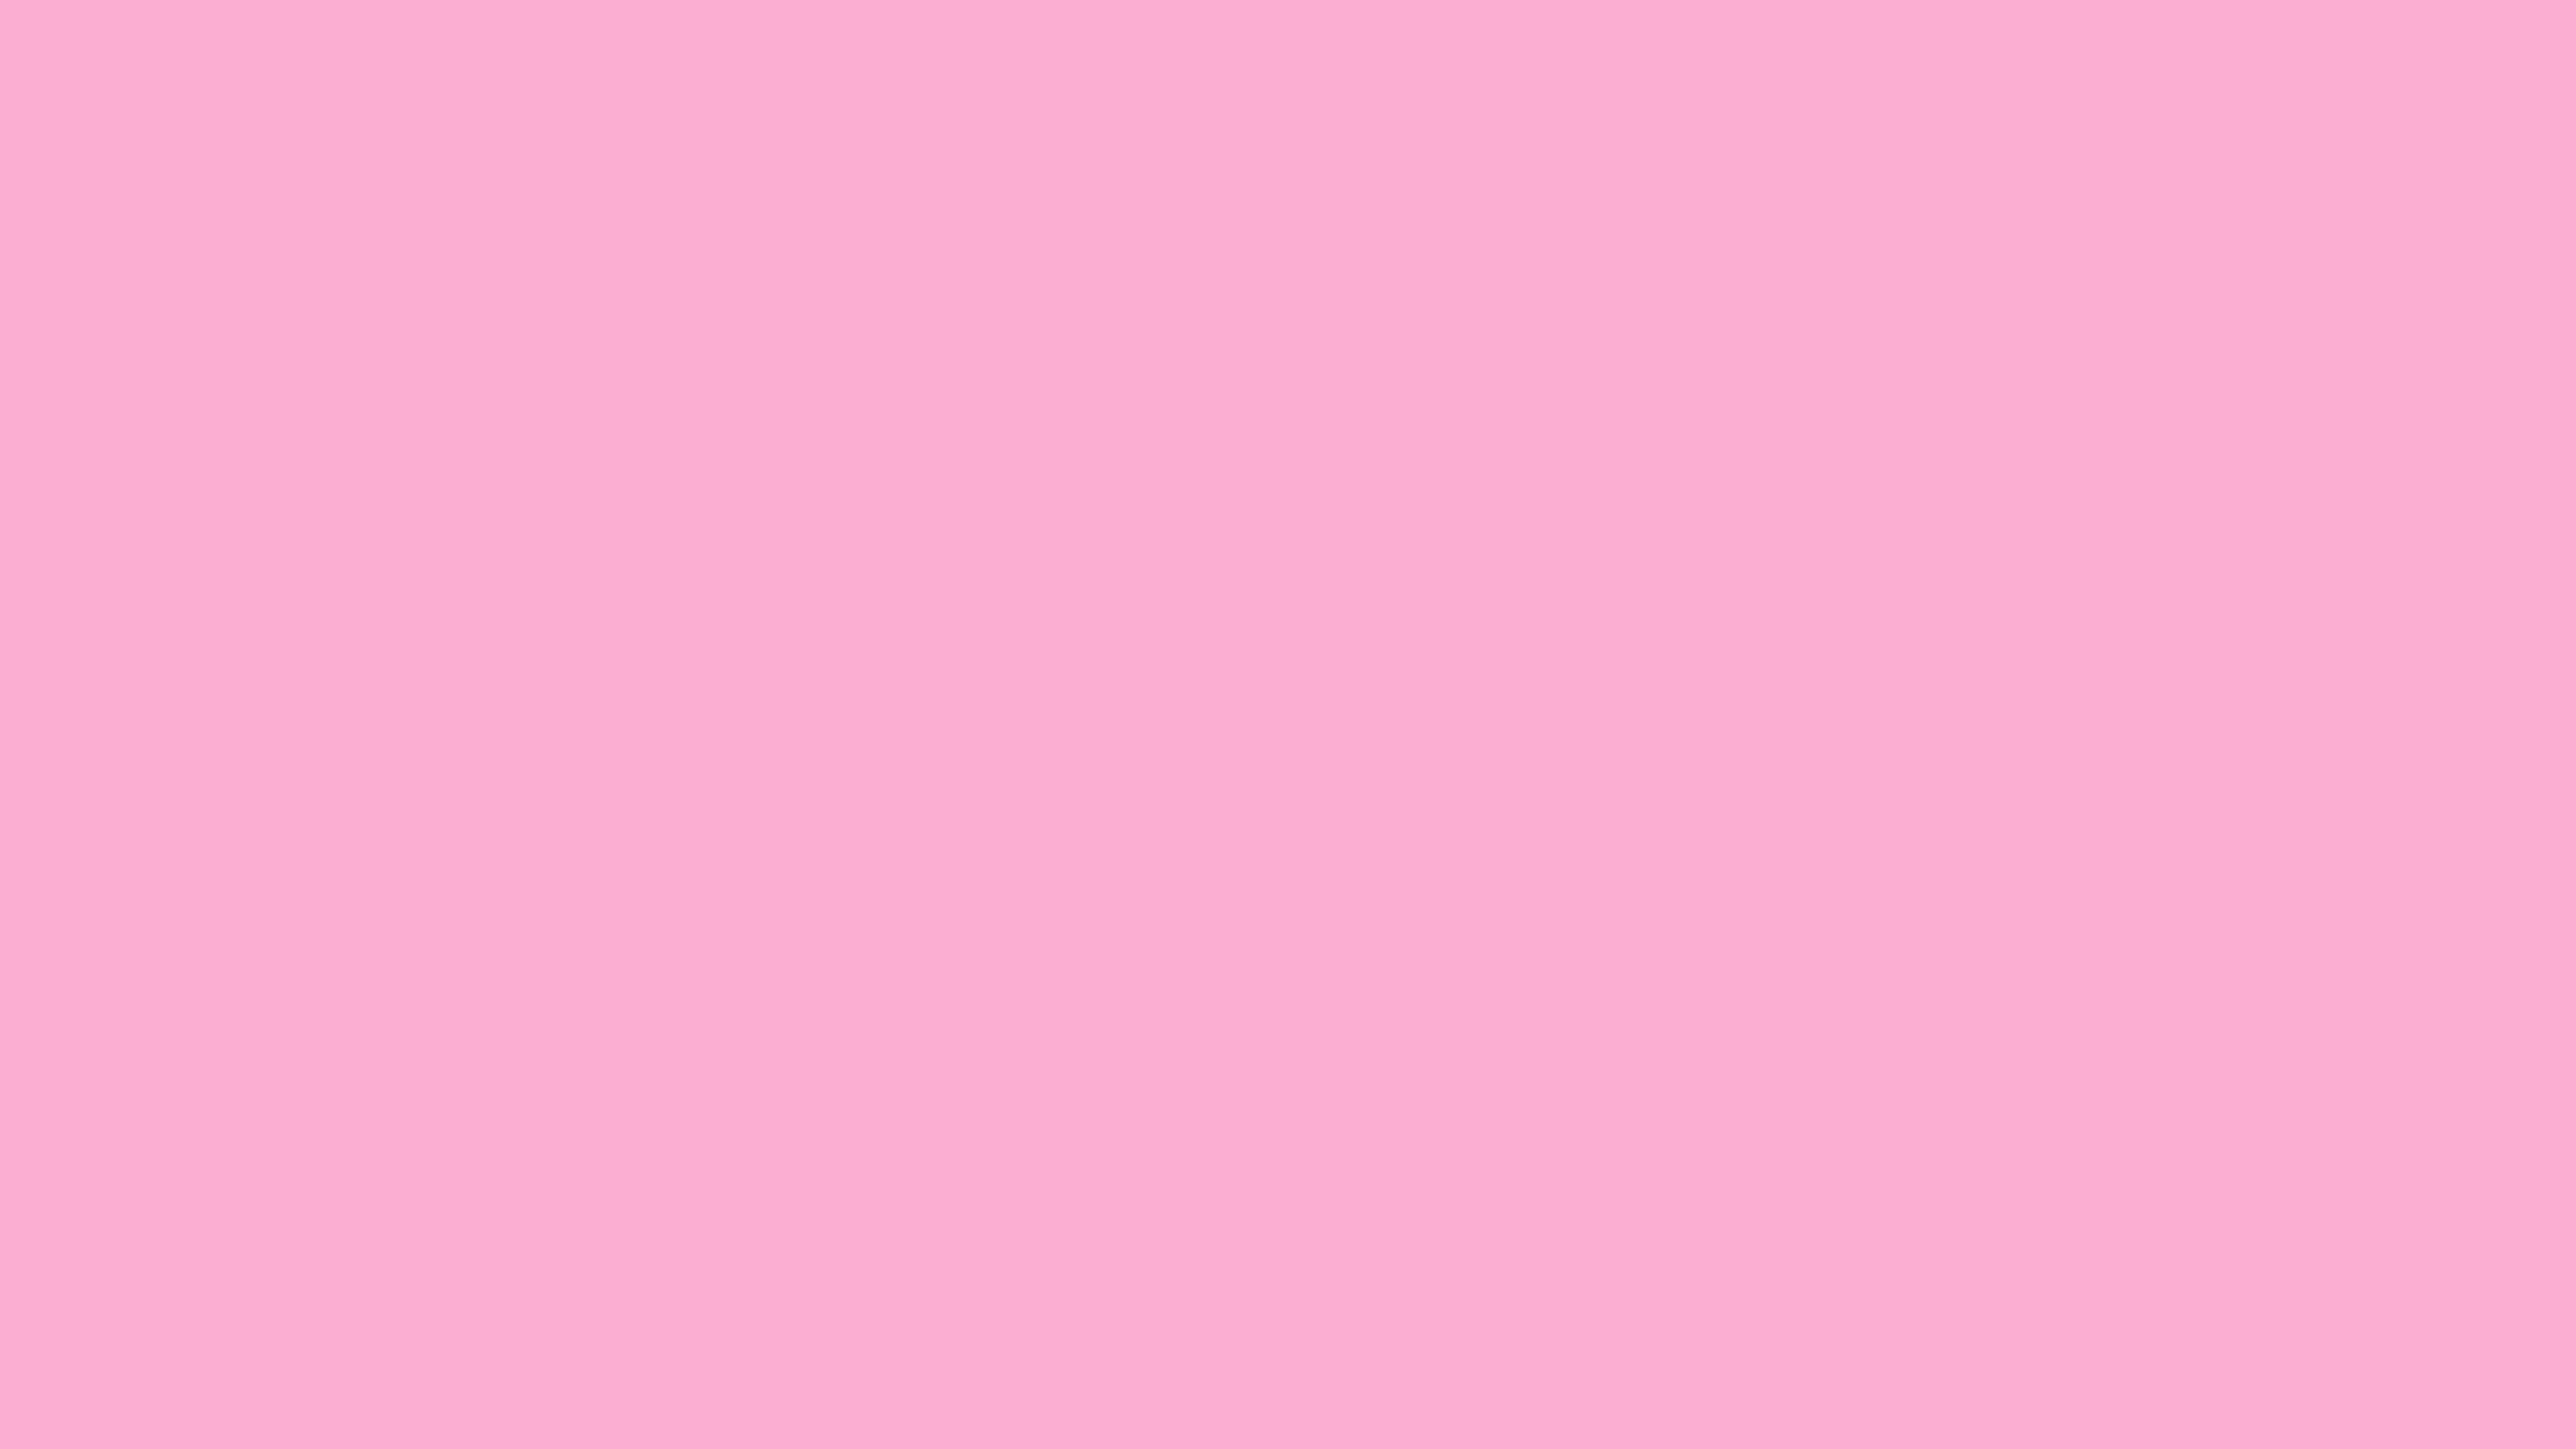 5120x2880 Lavender Pink Solid Color Background